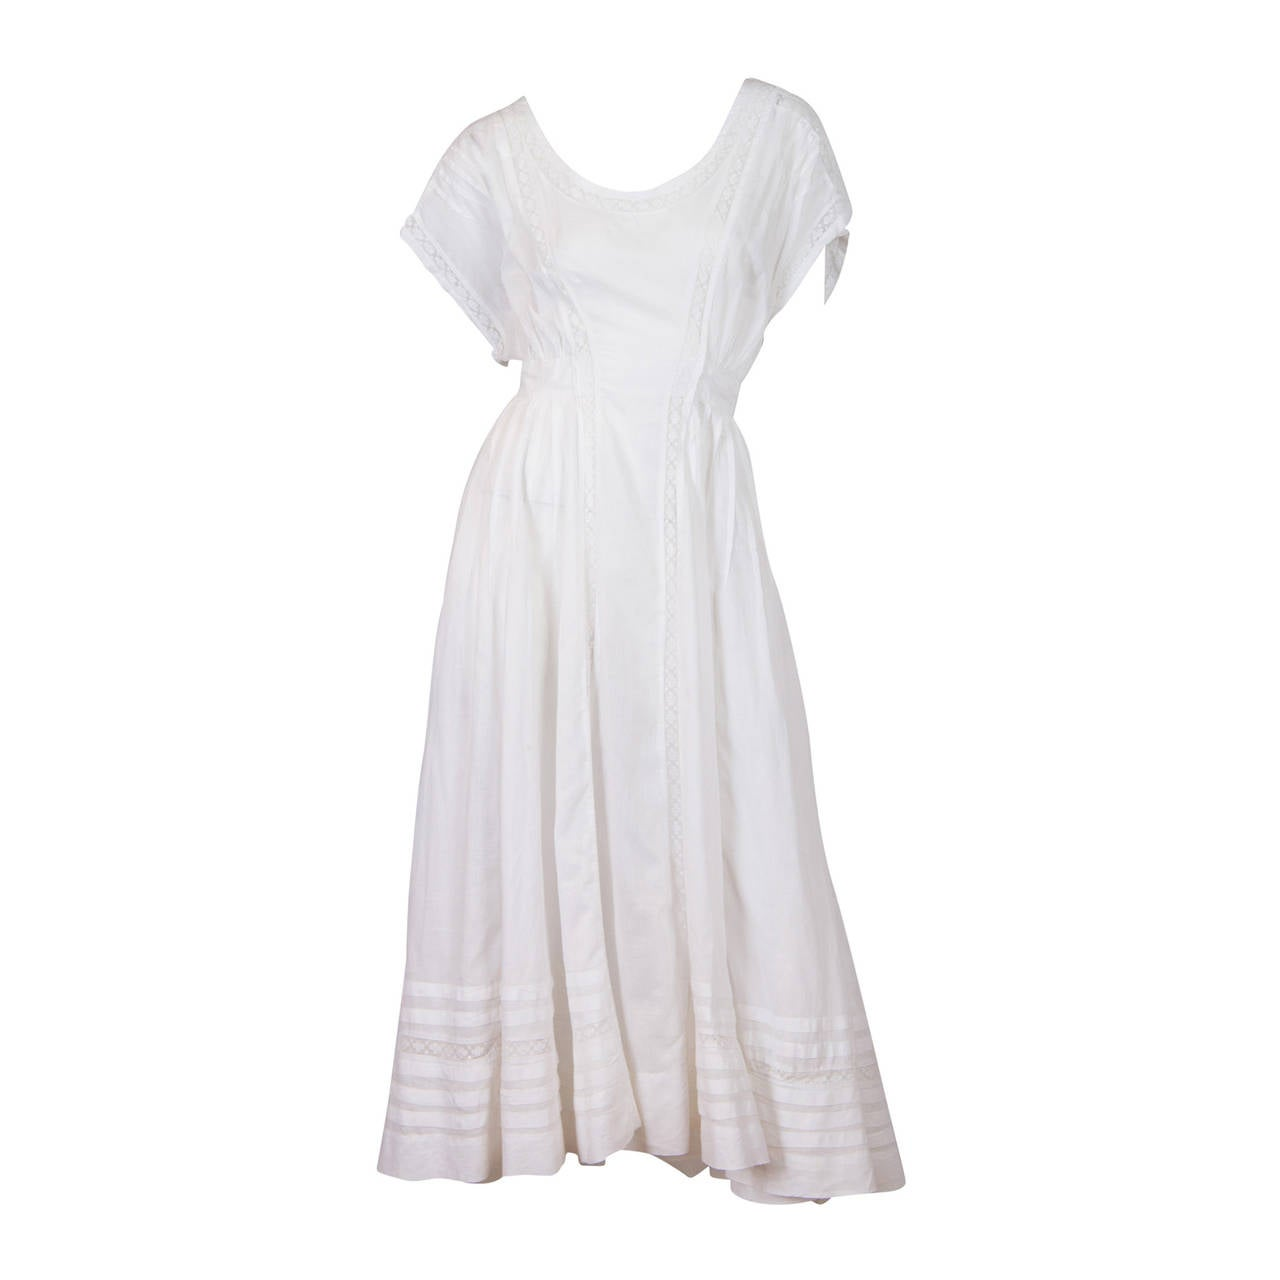 Edwardian Cotton Batiste and Lace Dress 1